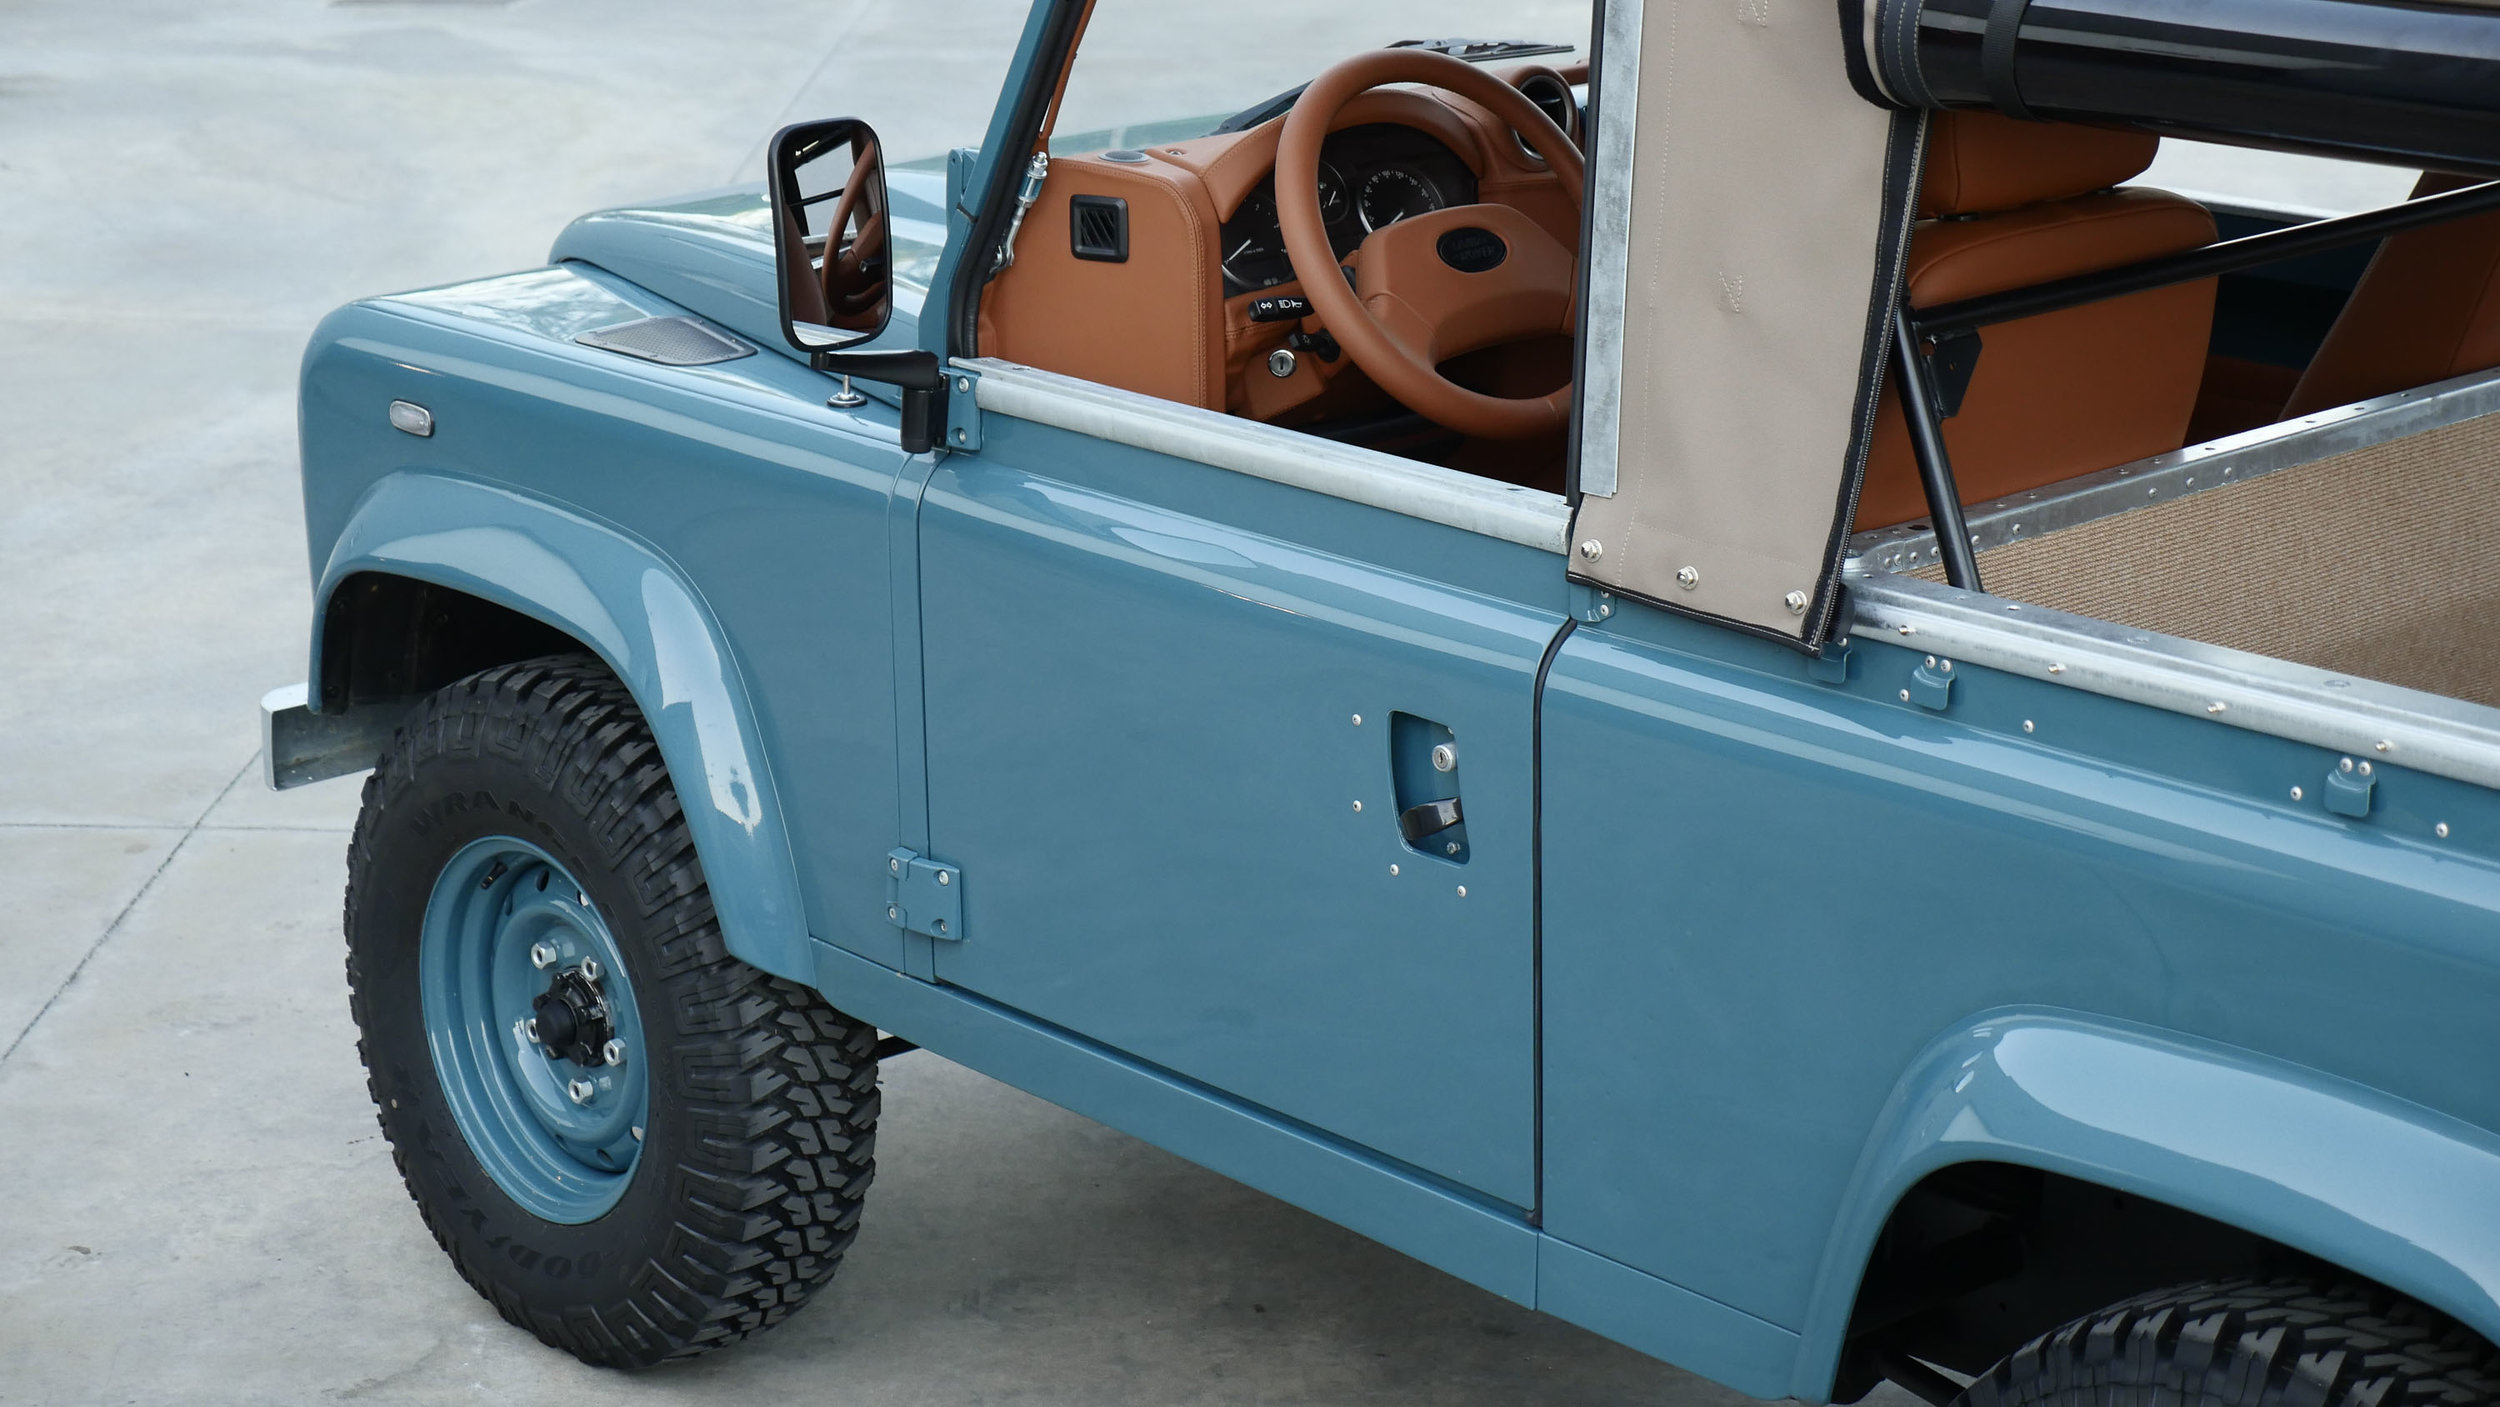 Coolnvntage Land Rover D90 Heritage (174 of 176).jpg